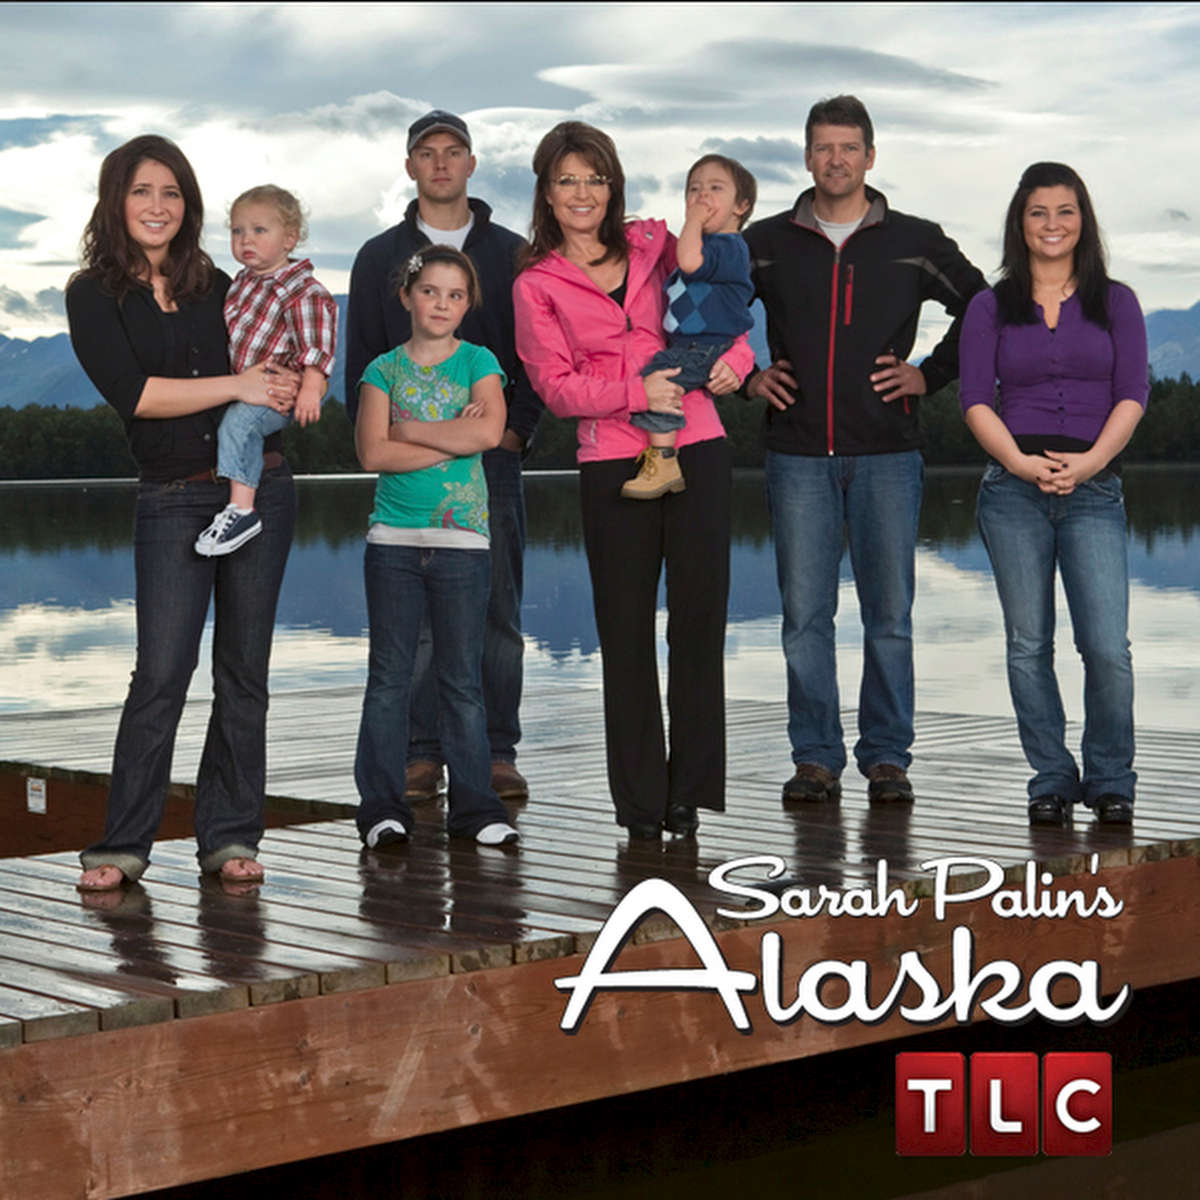 Sarah Palin's Alaska, Alaska, for Discovery Channel.